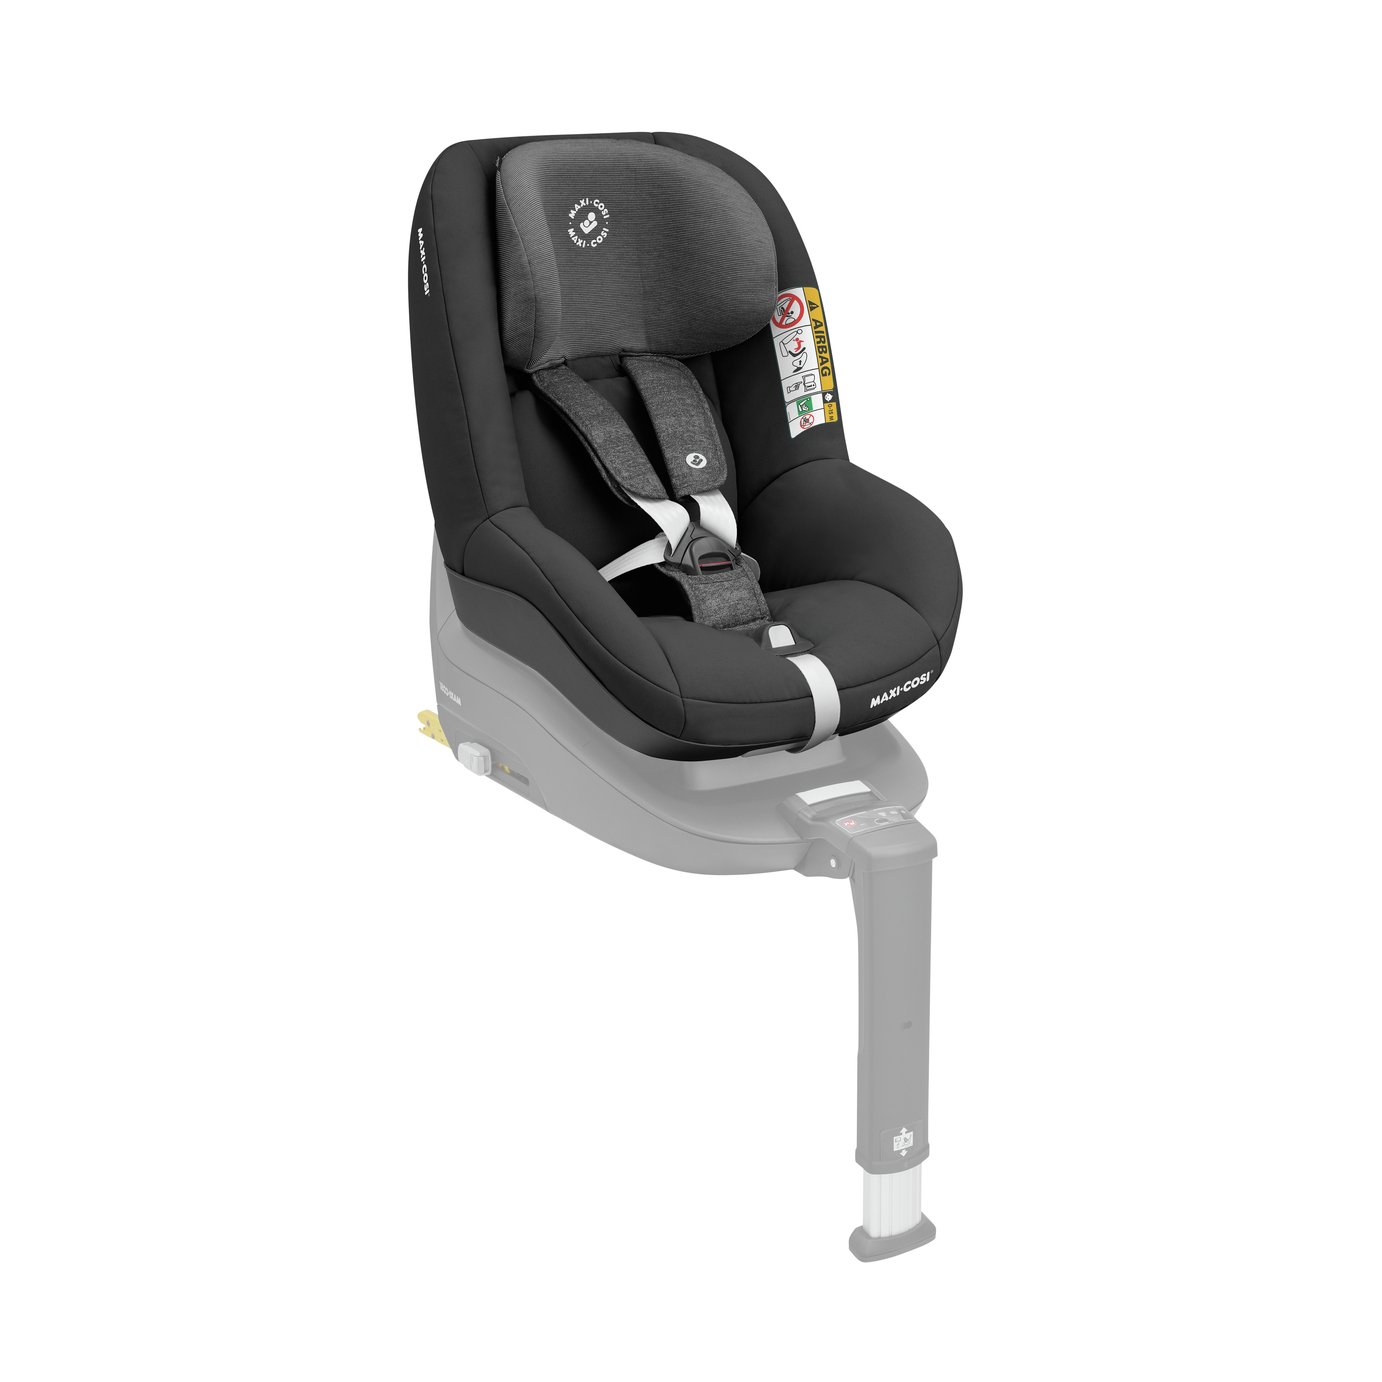 Maxi-Cosi Pearl Smart i-Size Car Seat - Nomad Black from Maxi-Cosi